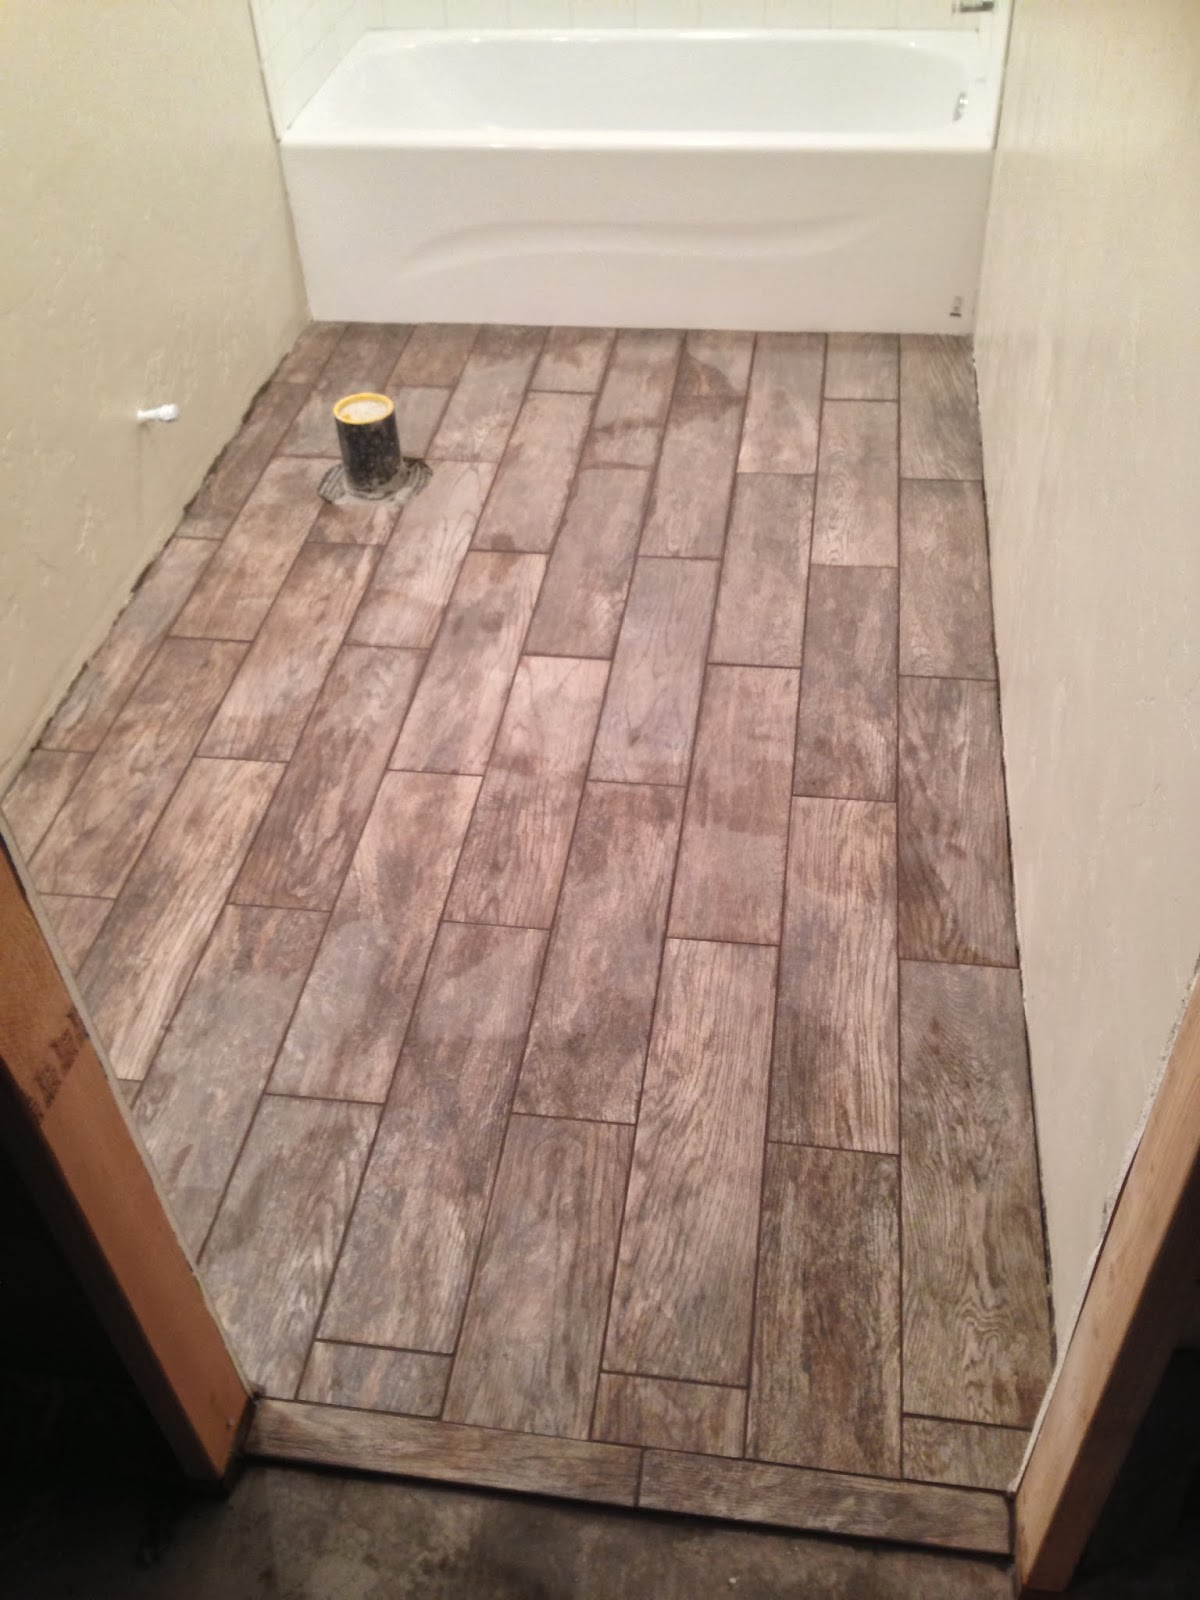 Chapman place tile floors and tile showers saturday february 8 2014 dailygadgetfo Choice Image